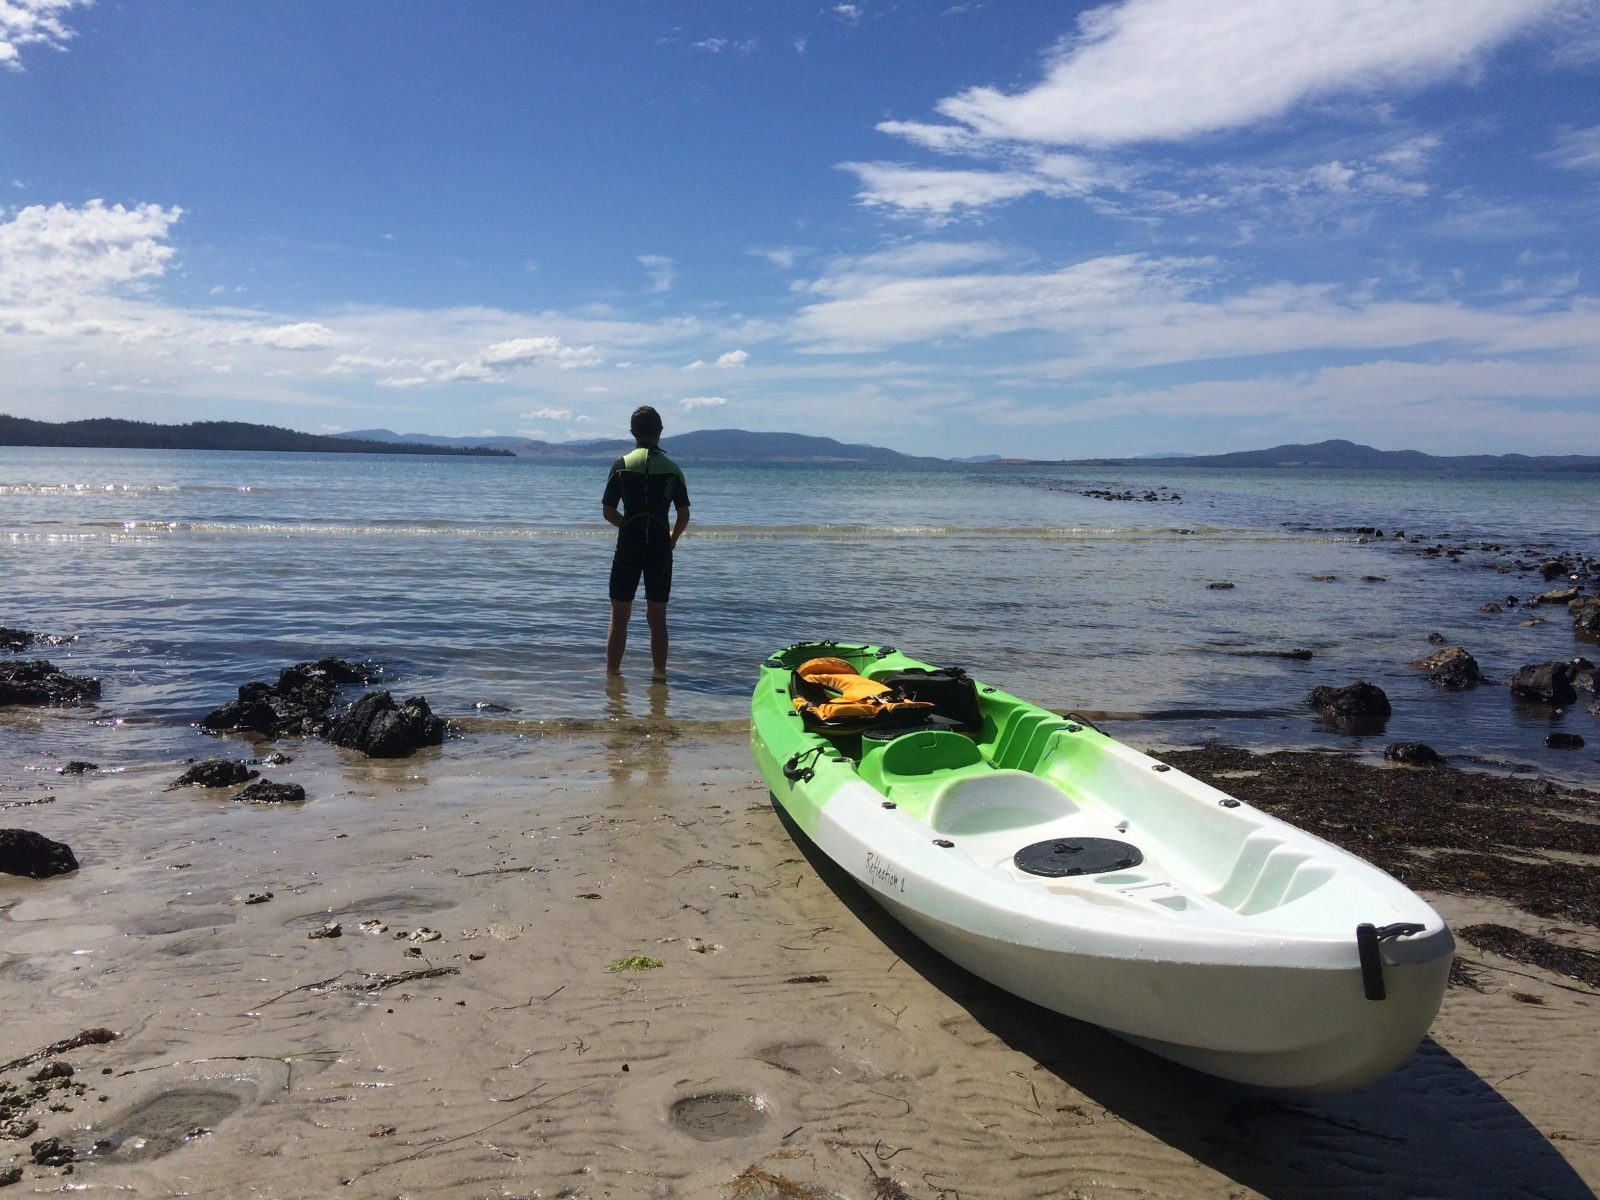 Explore our beaches and bays with our Kayak